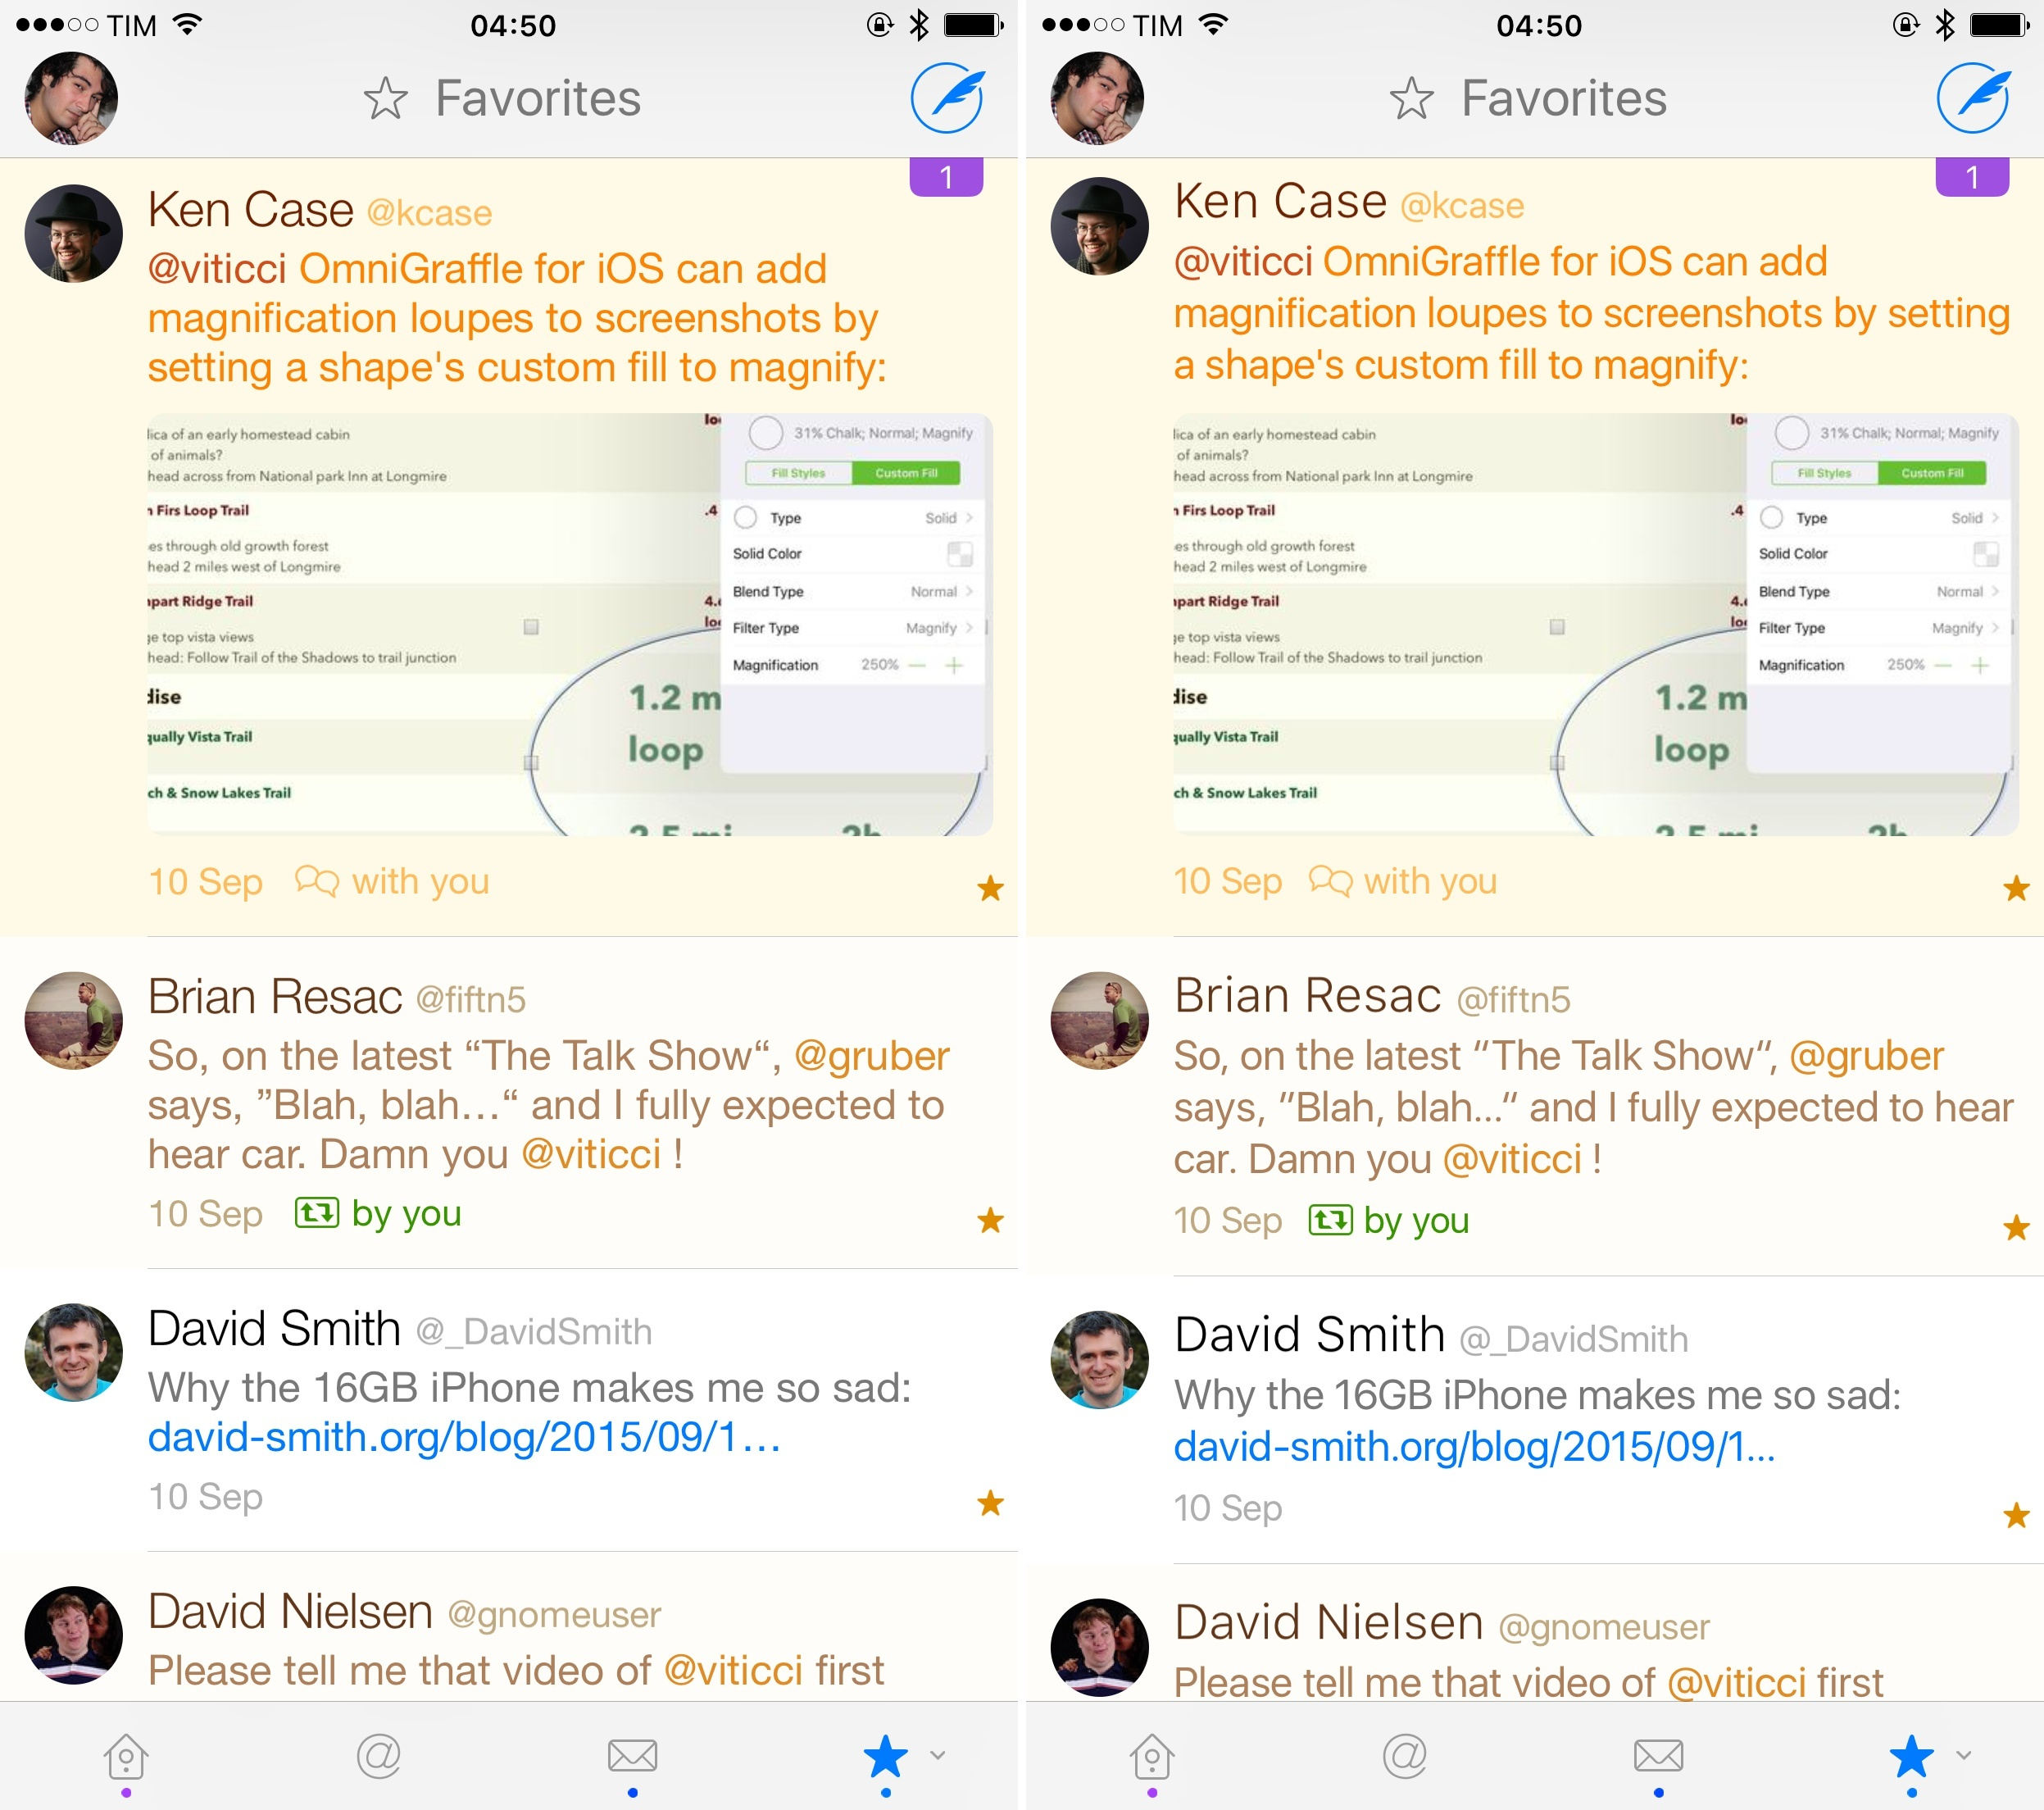 Twitterrific with Helvetica Neue (left) and San Francisco (right).